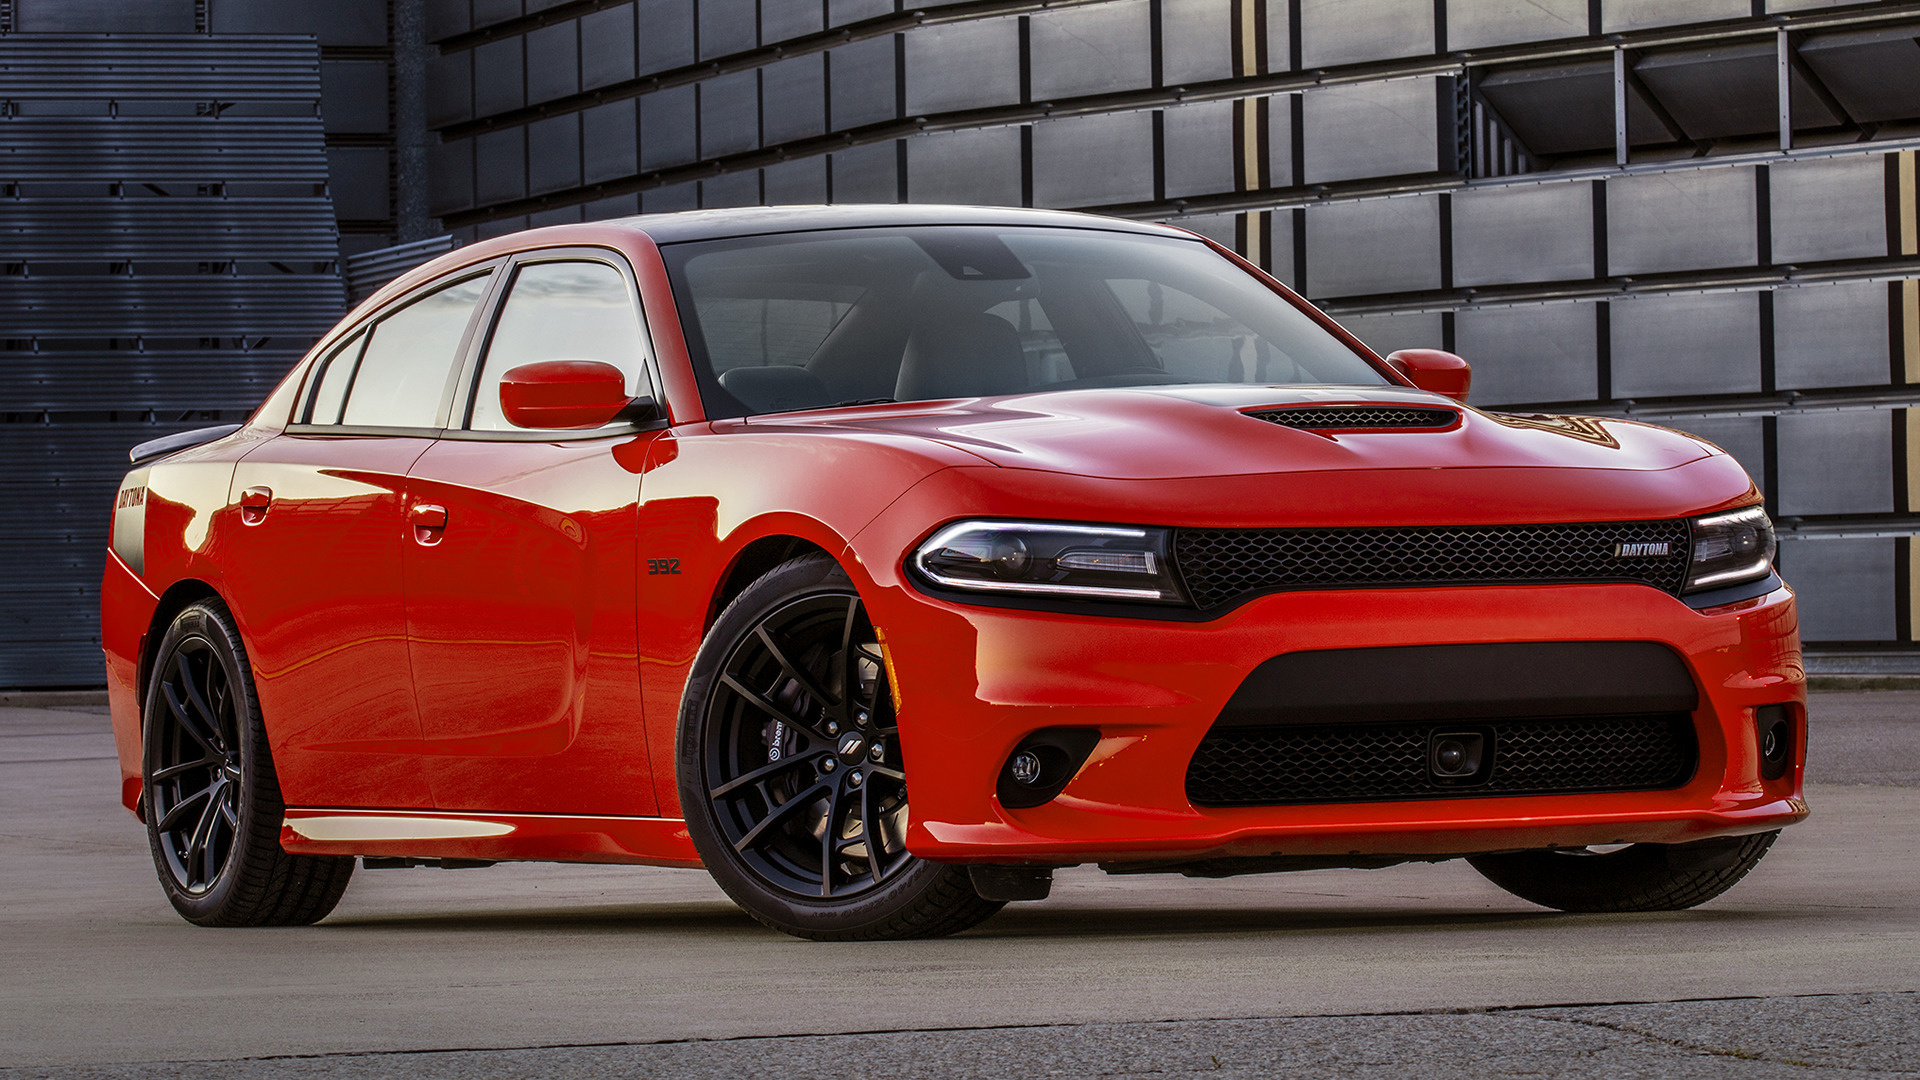 Dodge Charger Srt >> 2017 Dodge Charger Daytona 392 - Wallpapers and HD Images | Car Pixel